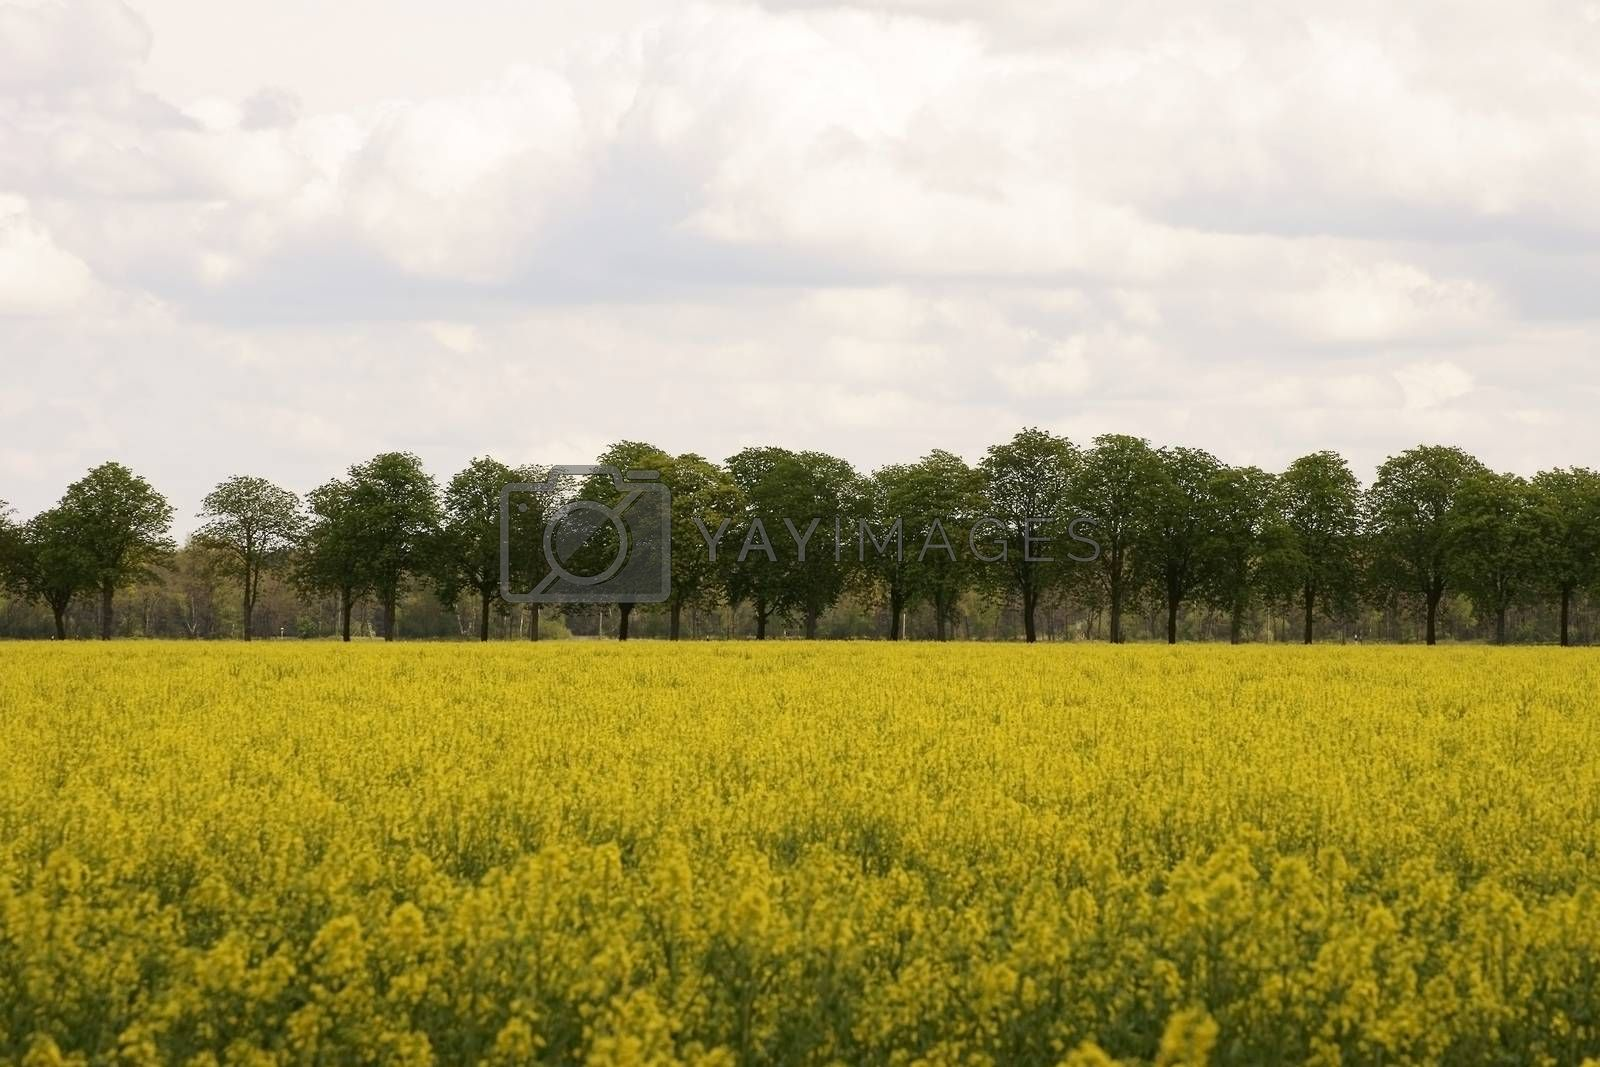 A tree-lined avenue of chestnut trees behind a yellow rapeseed field.